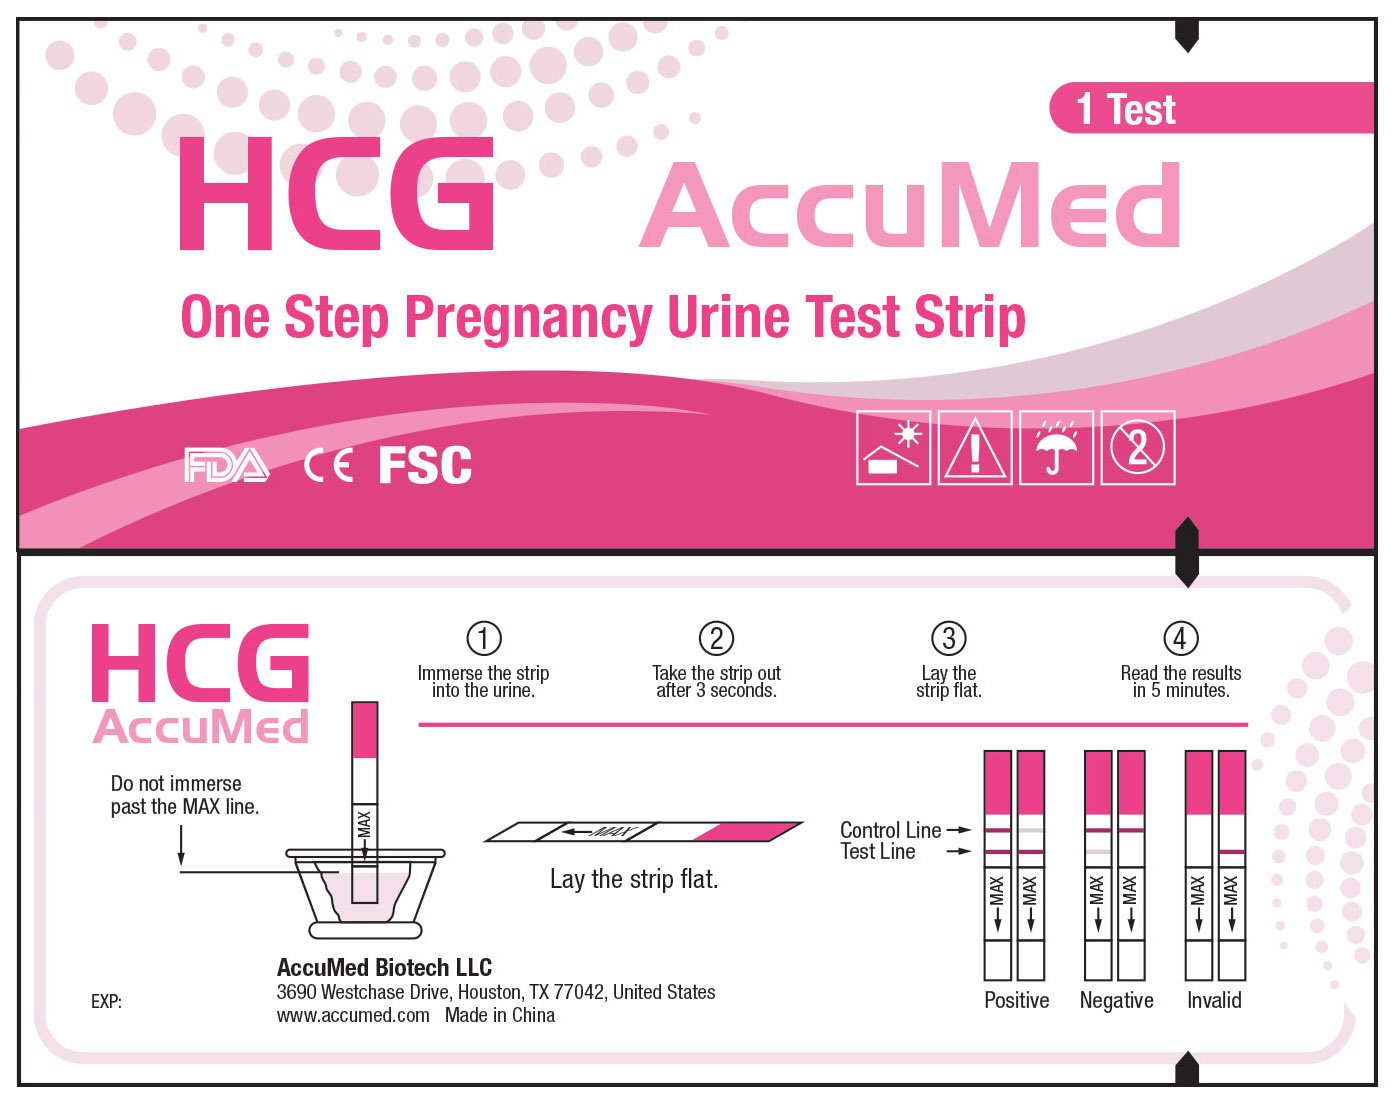 AccuMed Pregnancy (HCG) Test Strips Kit, Clear and Accurate Results, FDA Approved and Over 99% Accurate, 50 count - Expire 03/2019